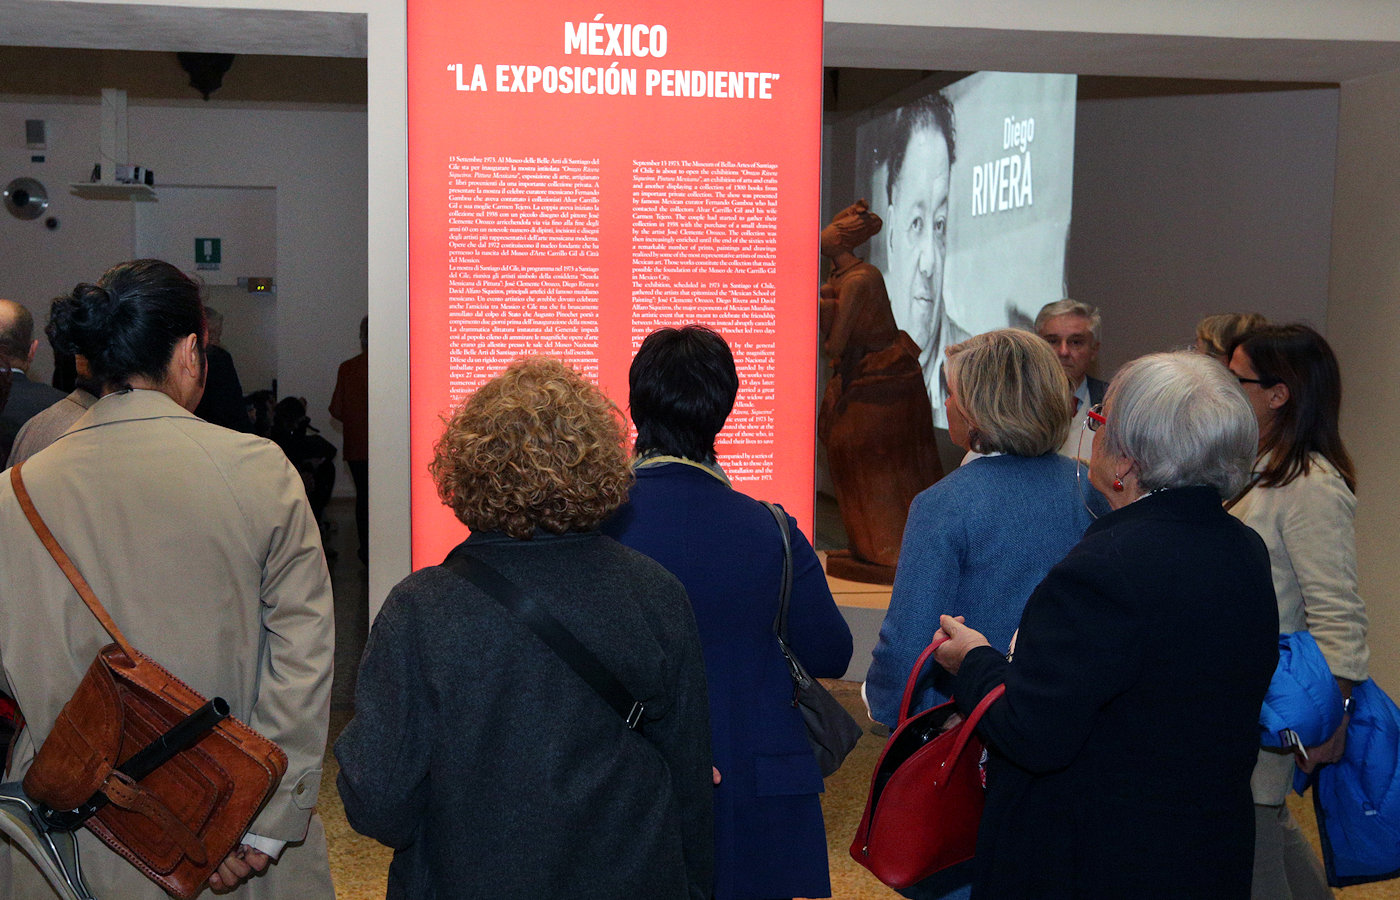 México-The Pending Exhibition